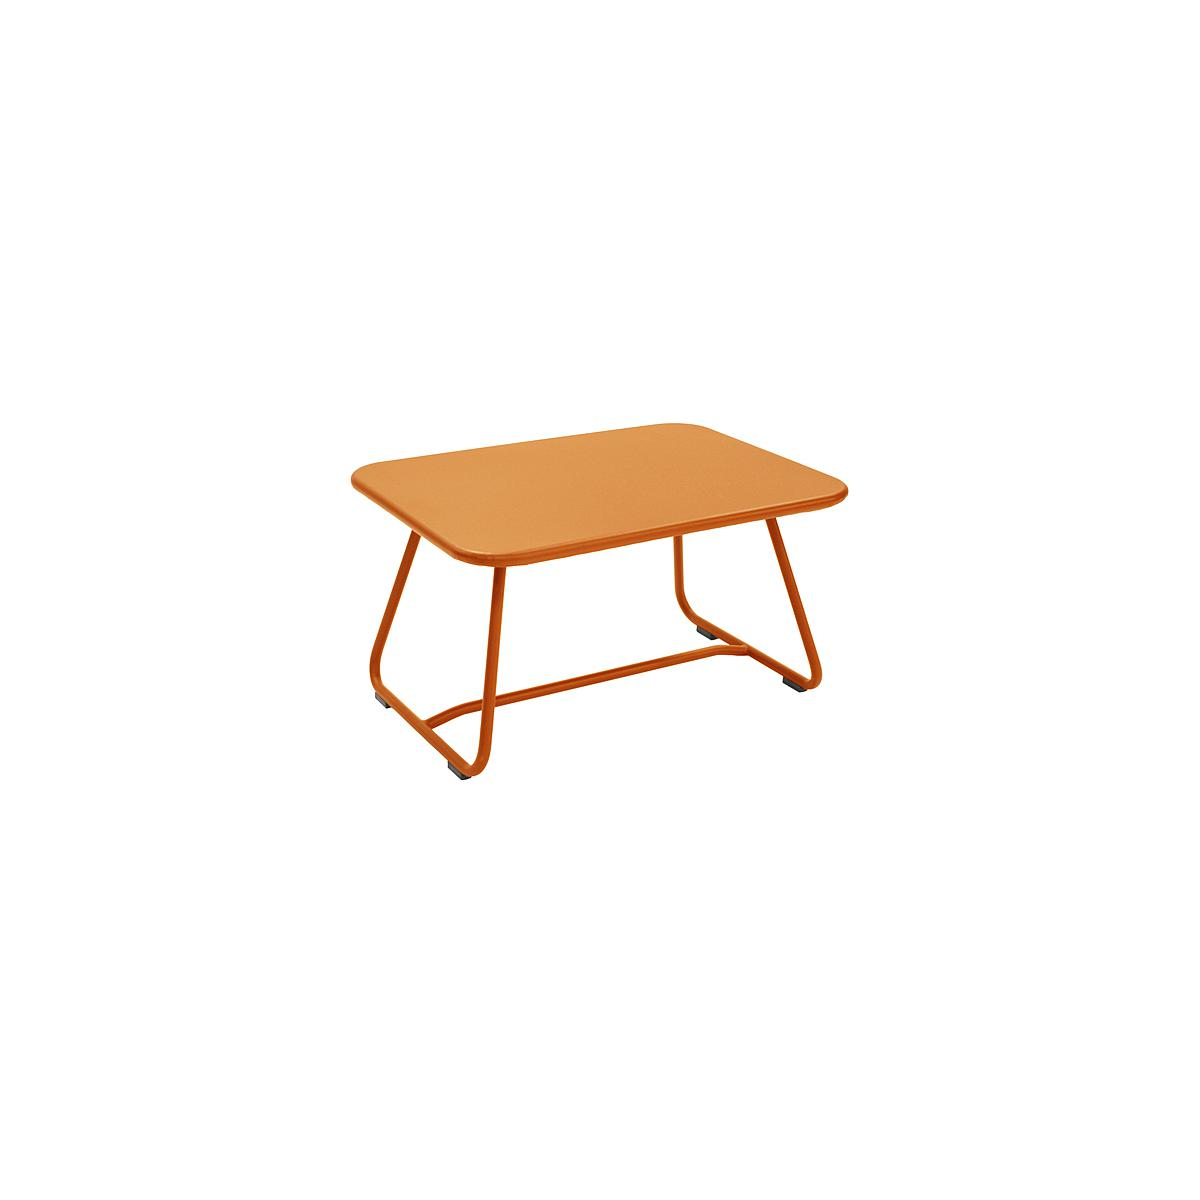 SIXTIES by Fermob Table basse Orange carotte